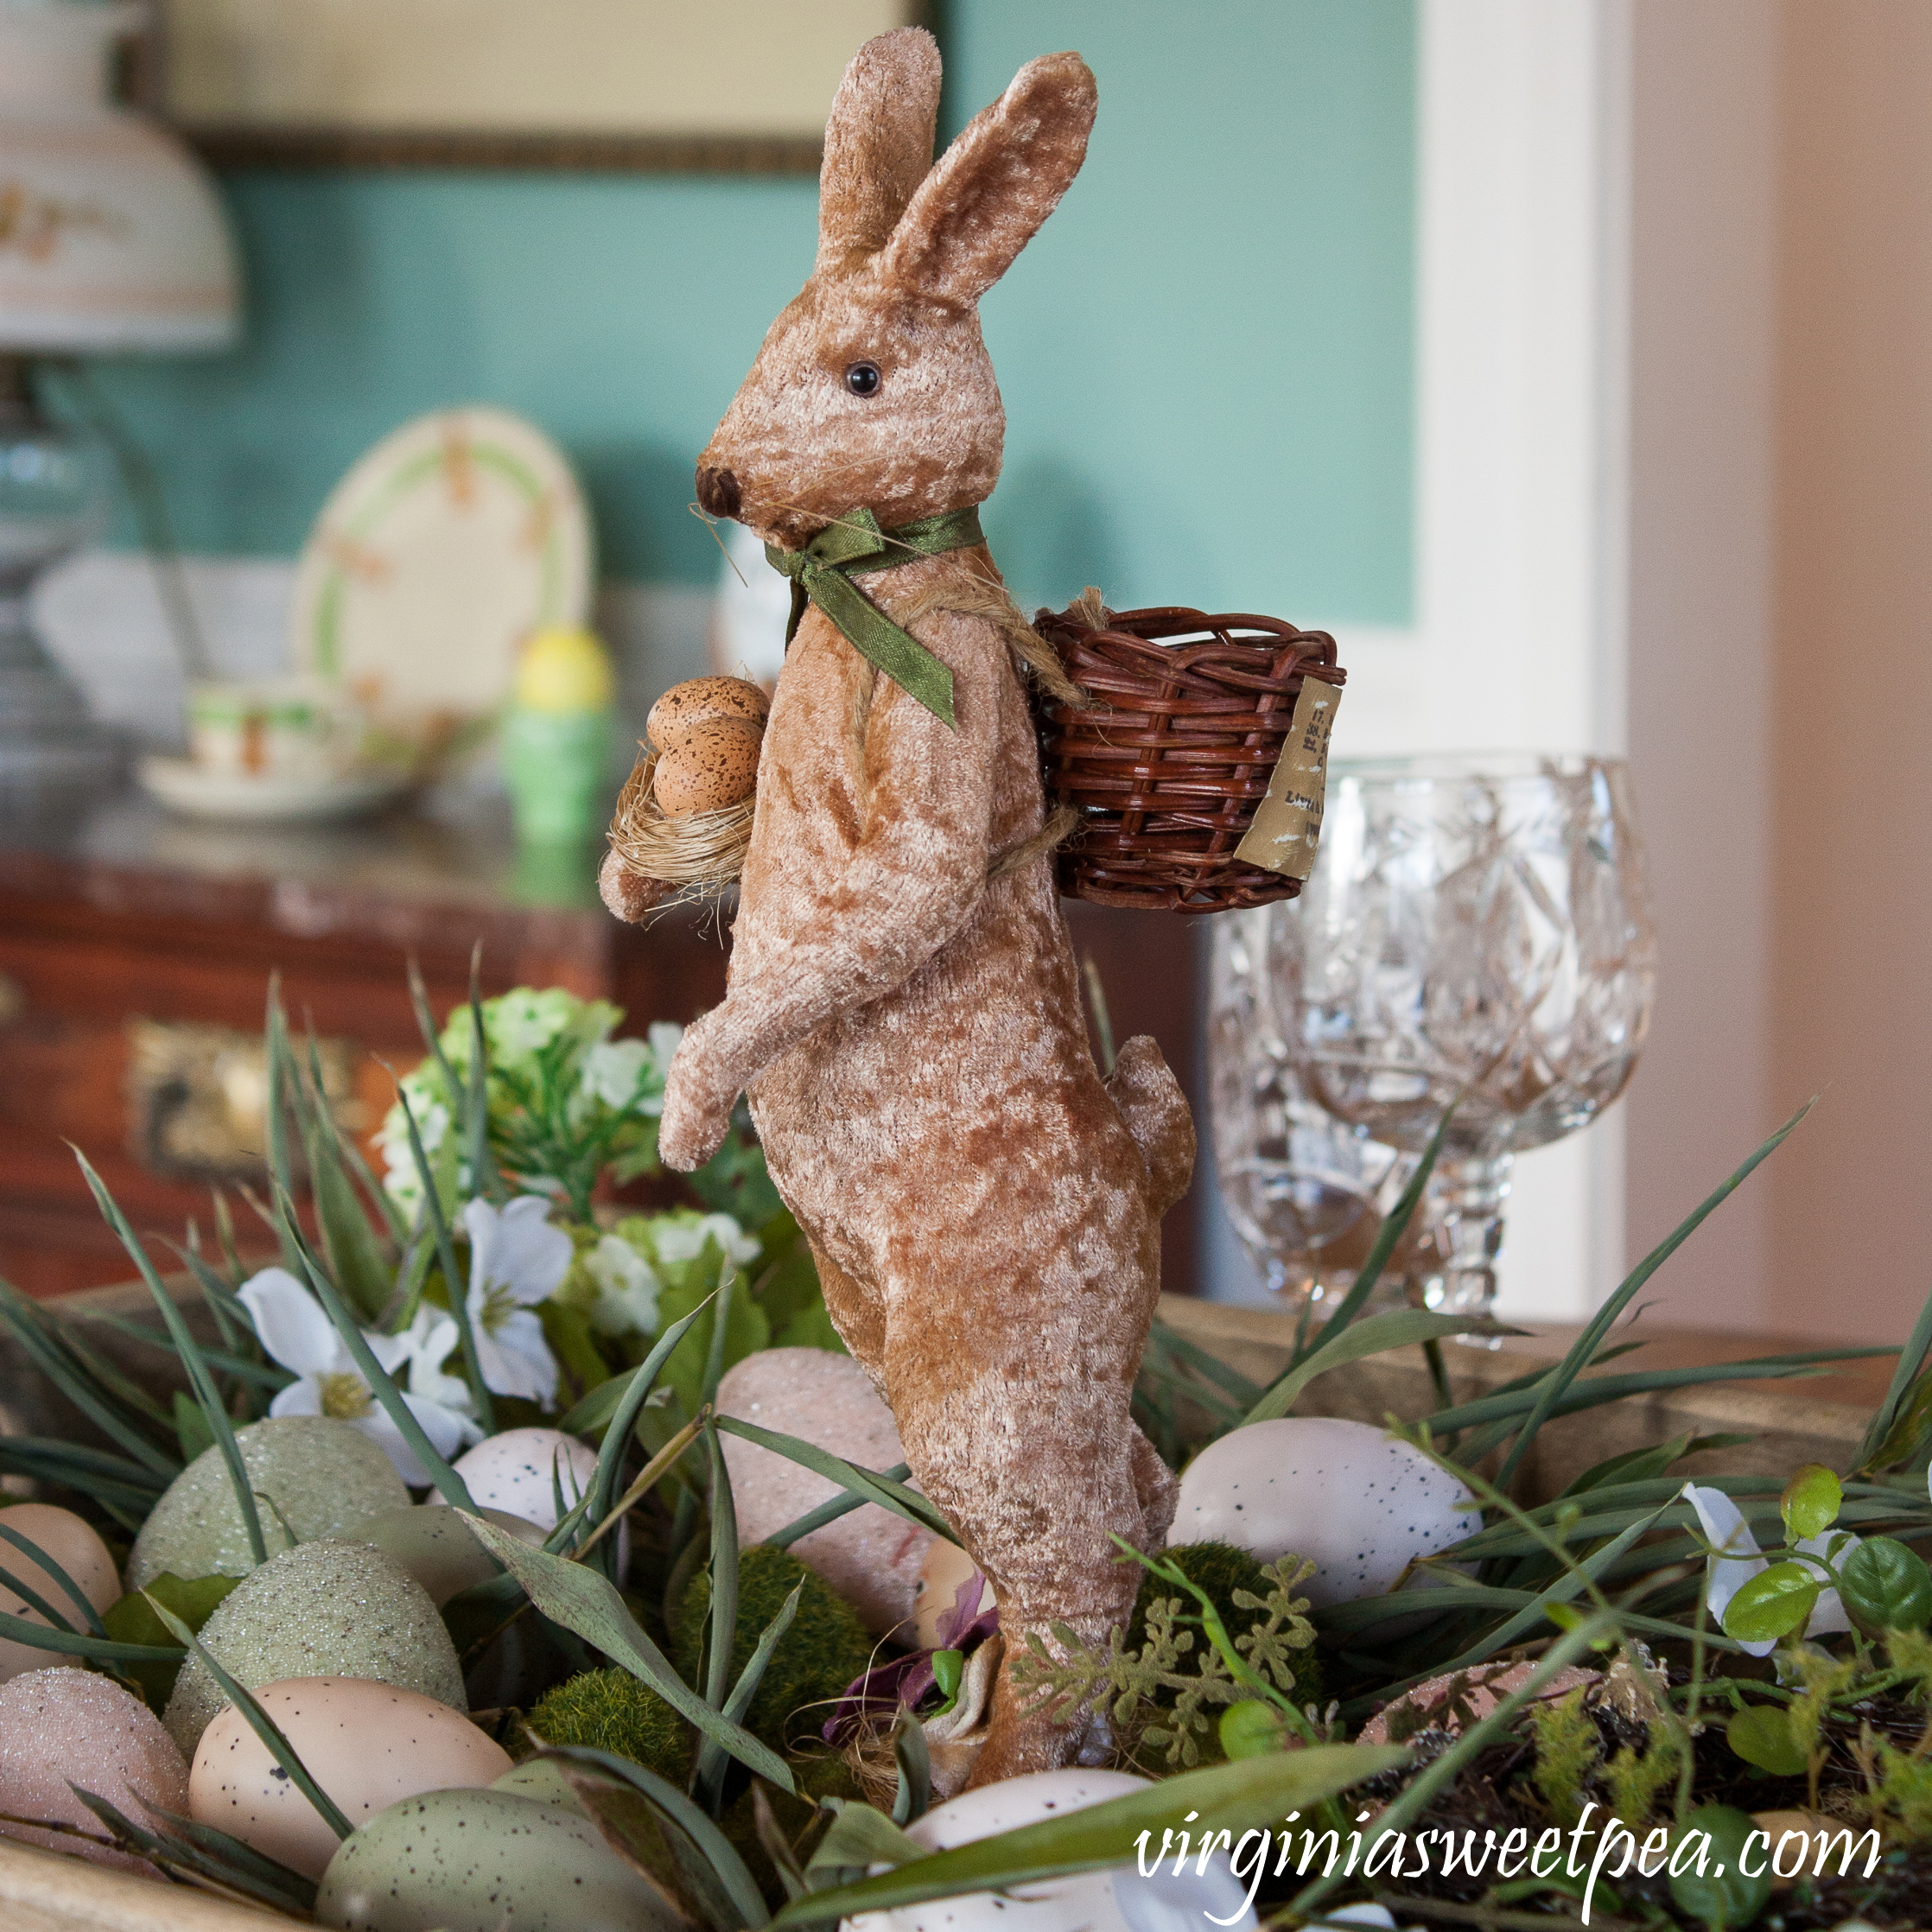 Farmhouse Style Easter Centerpiece - Learn how to make this centerpiece and get ideas for your Easter table. #easter #eastercenterpiece #rabbit #easterbunny #farmhouse #farmhousecenterpiece #eastertable